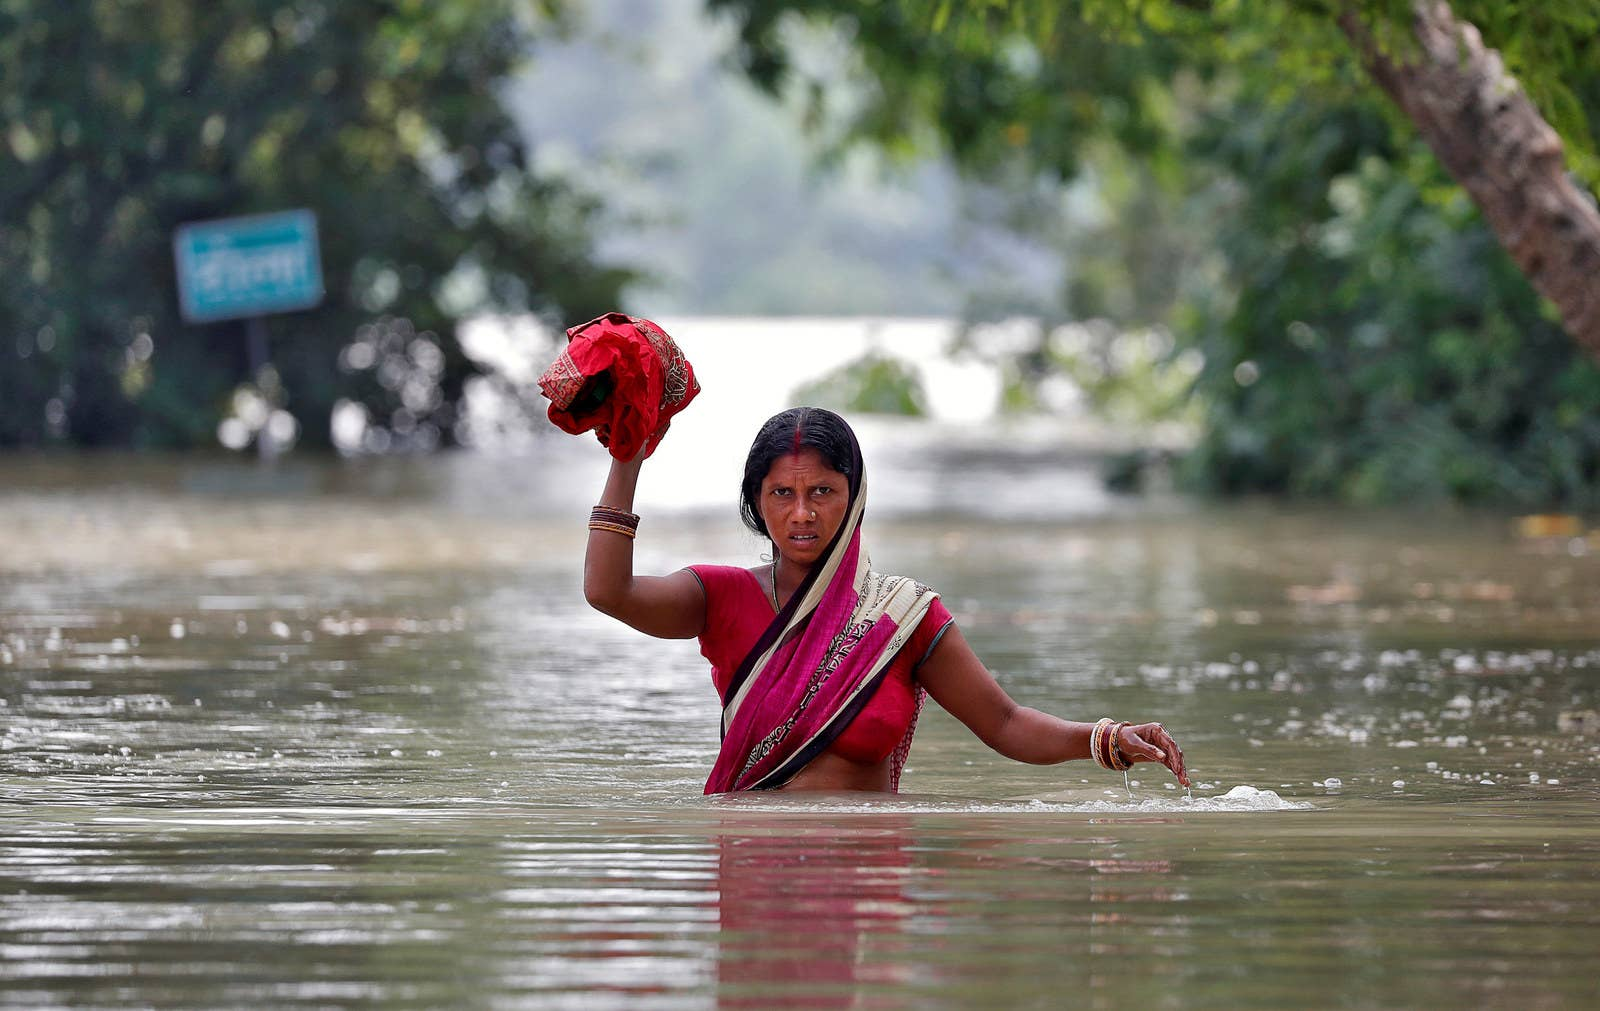 A woman wades through a flooded village in Bihar, India.